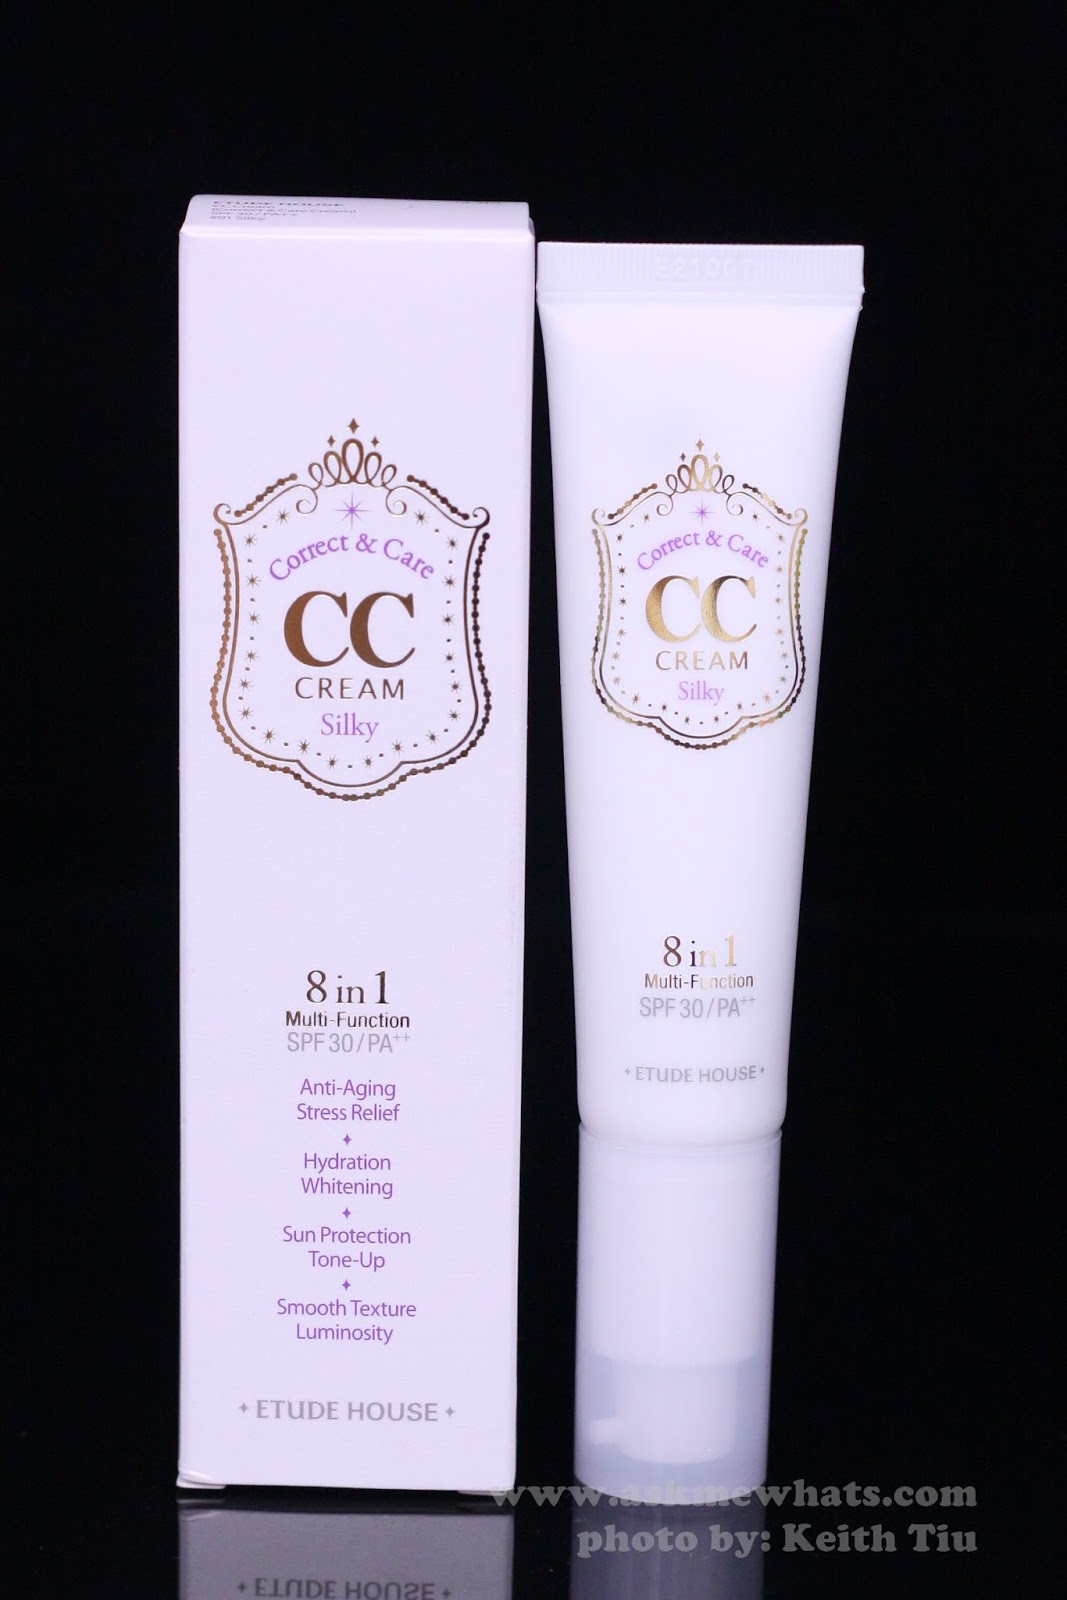 Etude house correct & care cc cream silky